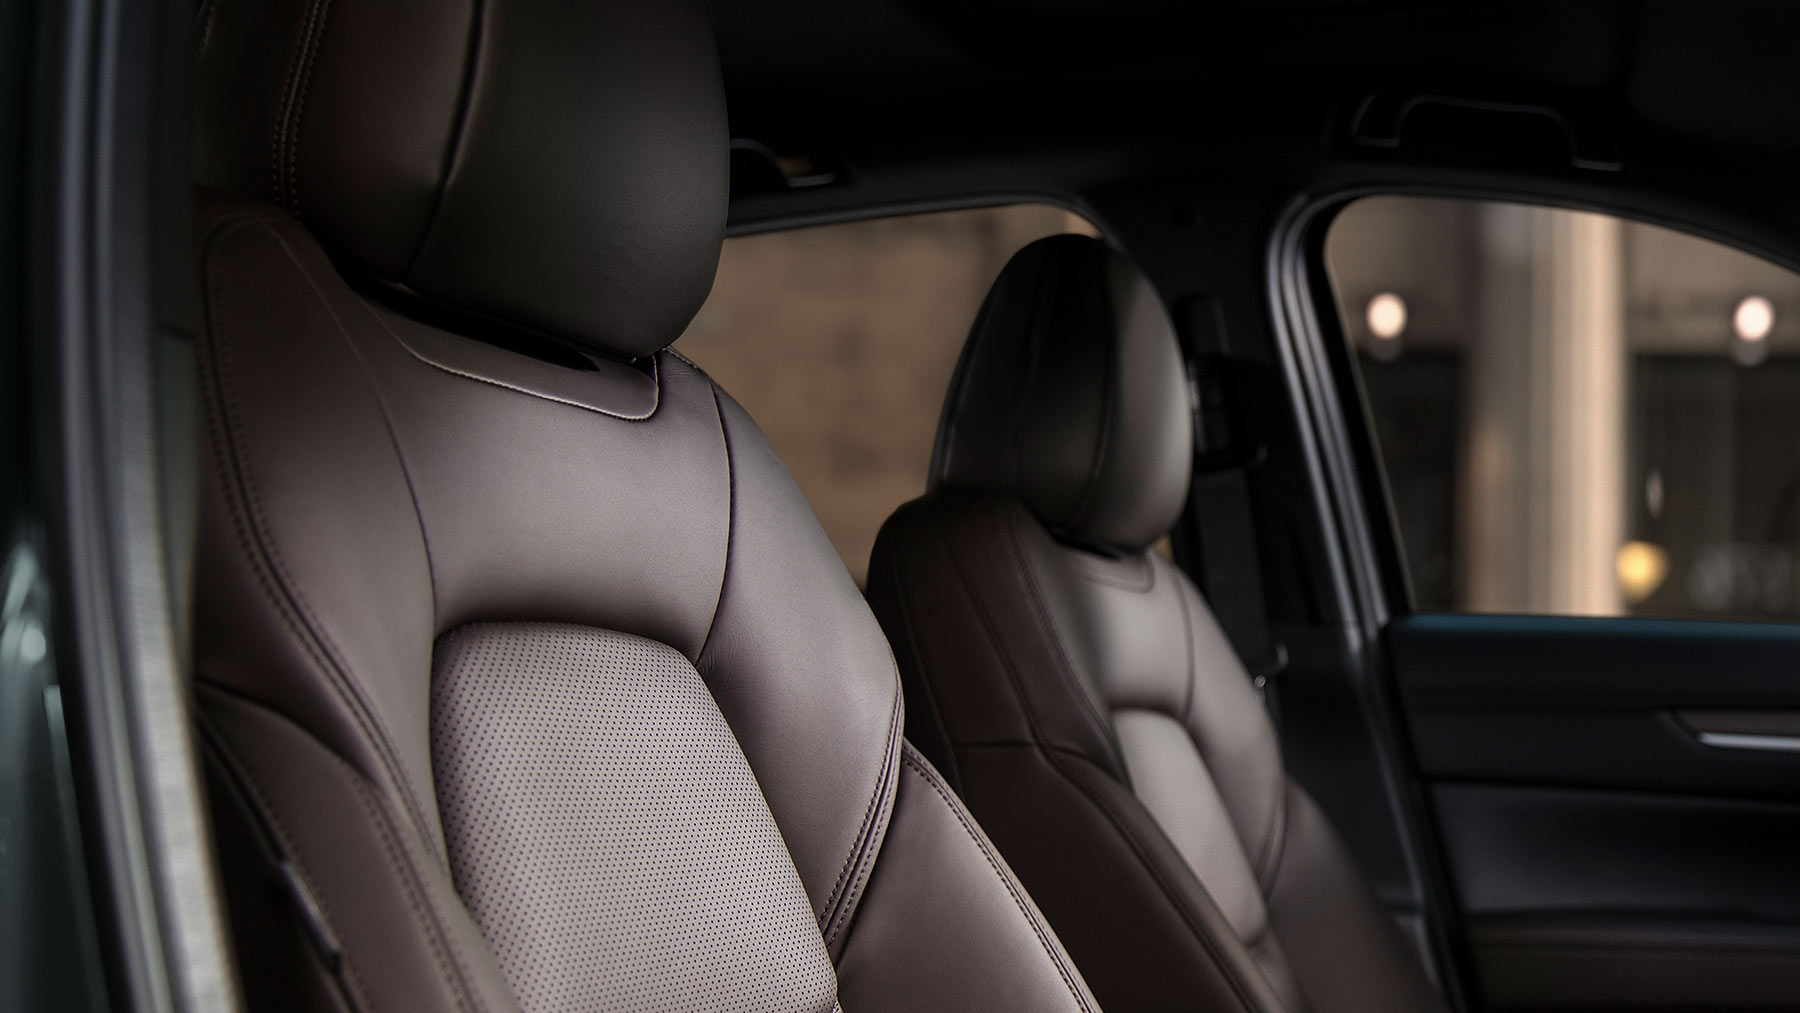 Luxurious Upholstery in the 2019 Mazda CX-5